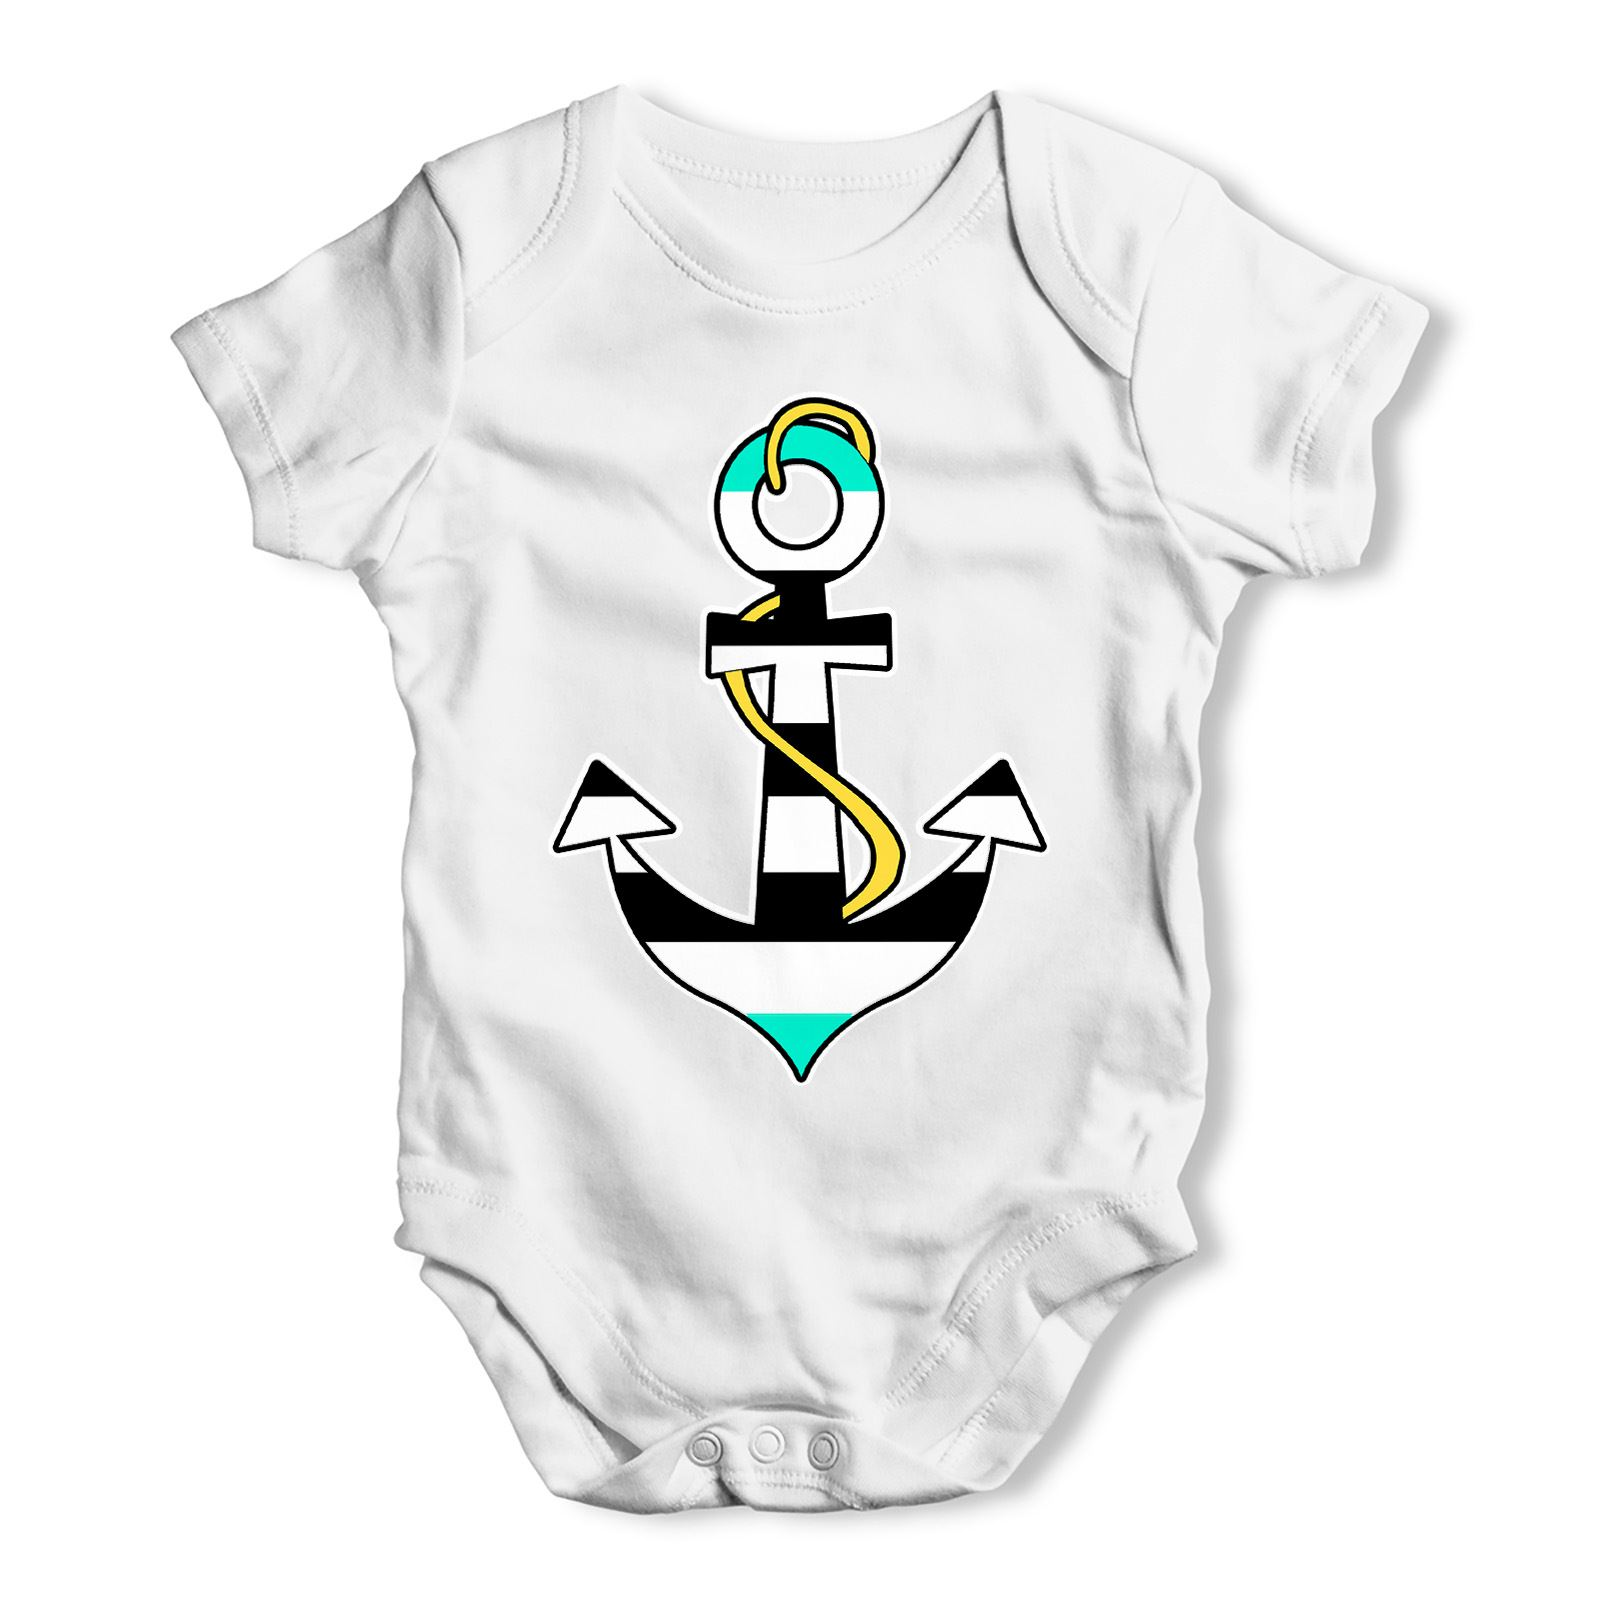 Twisted Envy Personalised Blue Anchor Baby Unisex Funny Baby Grow Bodysuit